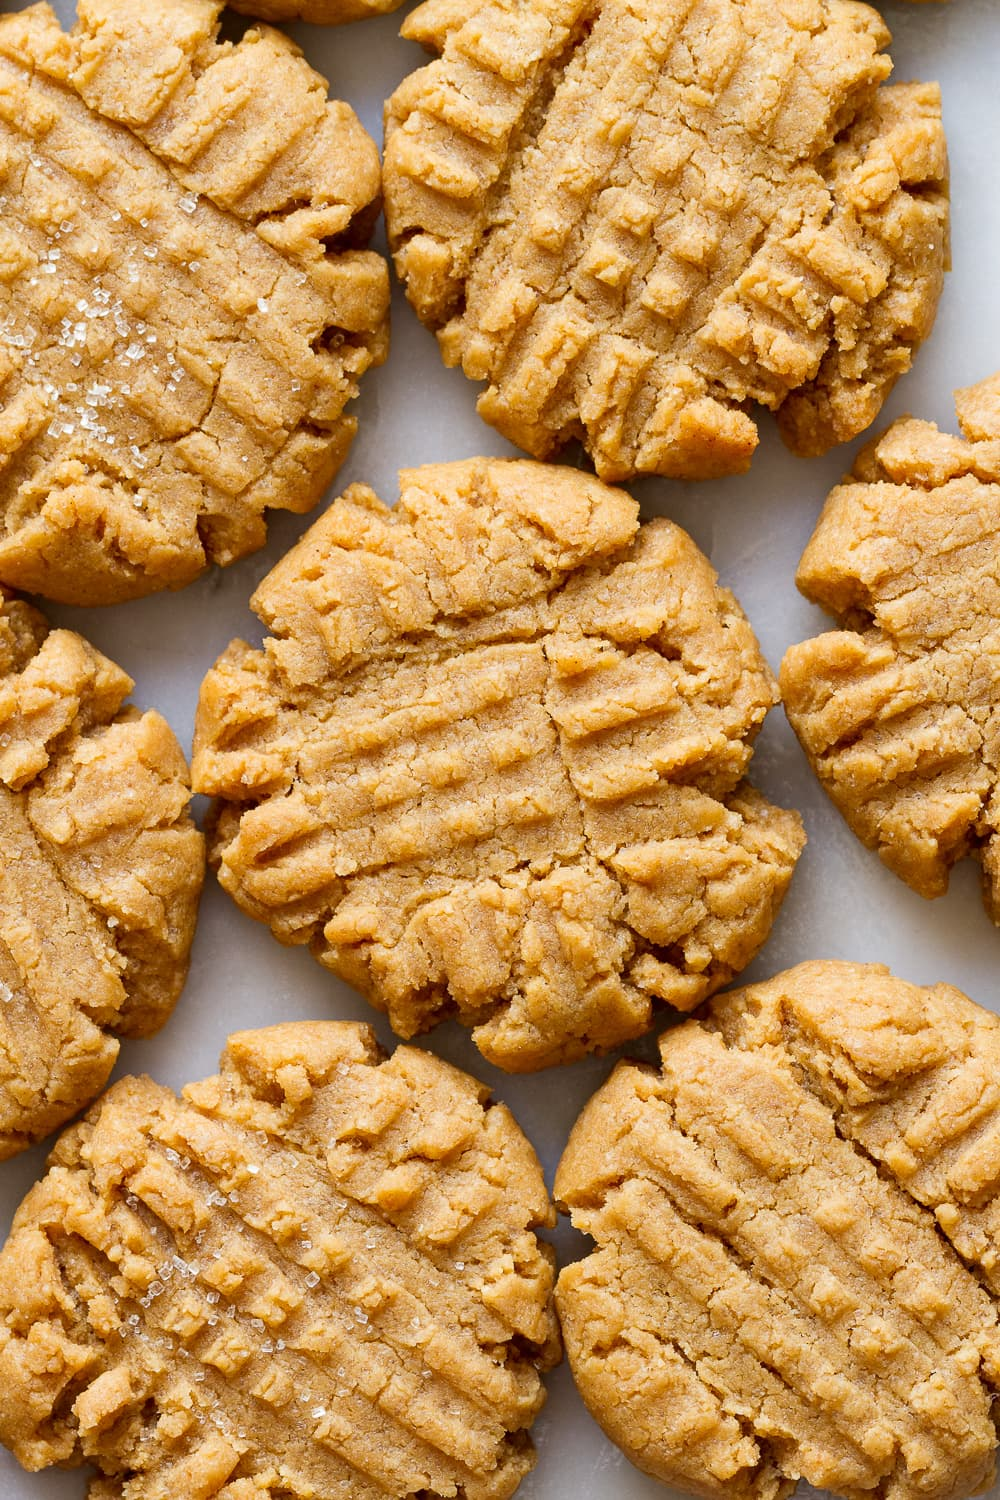 up close view of a cluster of vegan peanut butter cookies on a marble slab.